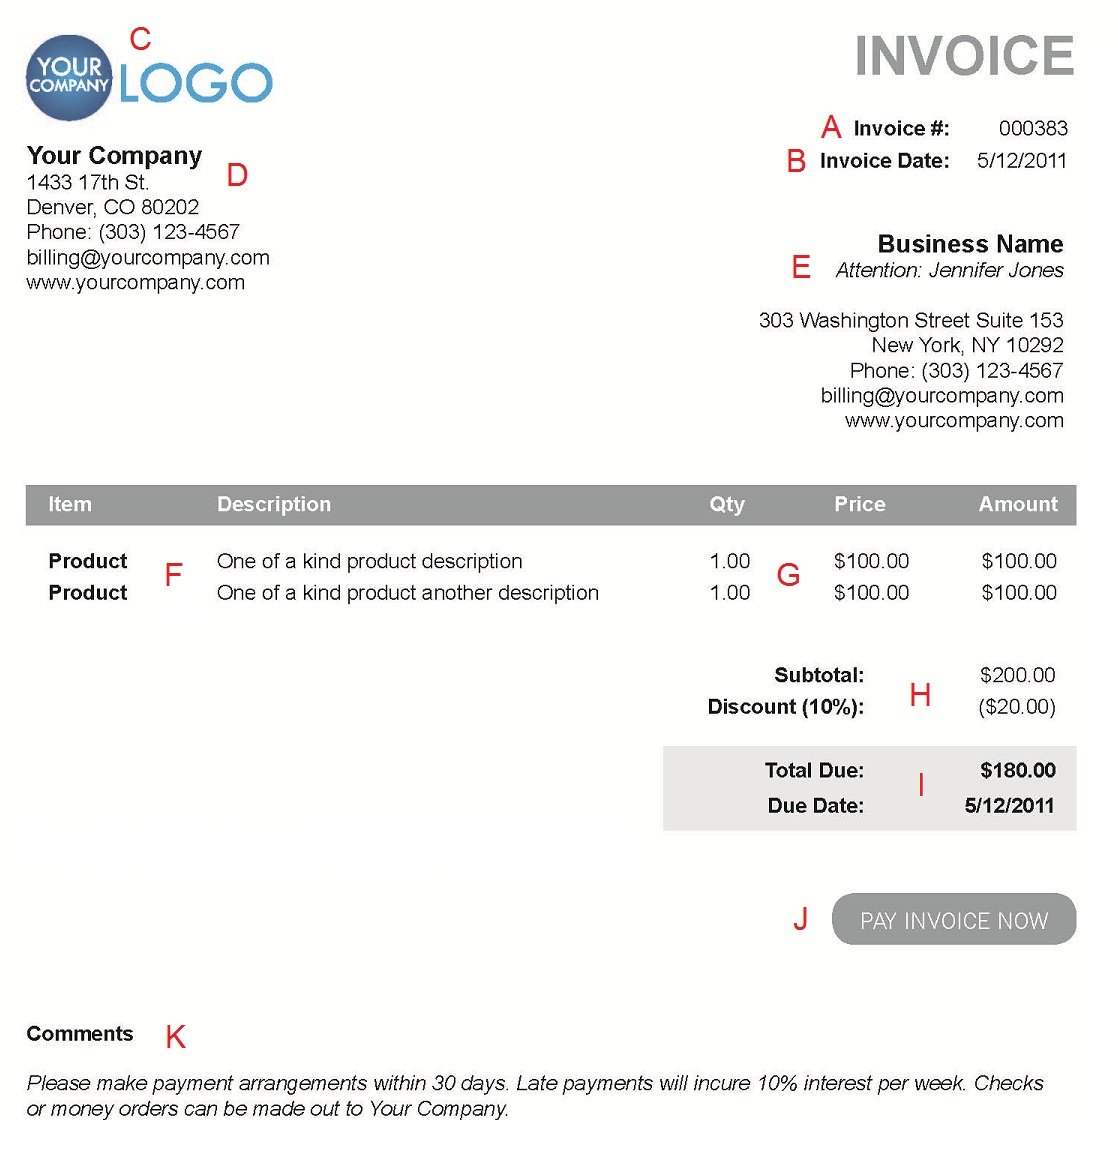 Coolmathgamesus  Sweet The  Different Sections Of An Electronic Payment Invoice With Lovable A  With Lovely Invoice Templates Uk Also Invoice Requirements Ato In Addition Meaning Of Sales Invoice And Invoice Templates Download As Well As Professional Invoice Software Additionally Export Commercial Invoice Template From Paysimplecom With Coolmathgamesus  Lovable The  Different Sections Of An Electronic Payment Invoice With Lovely A  And Sweet Invoice Templates Uk Also Invoice Requirements Ato In Addition Meaning Of Sales Invoice From Paysimplecom